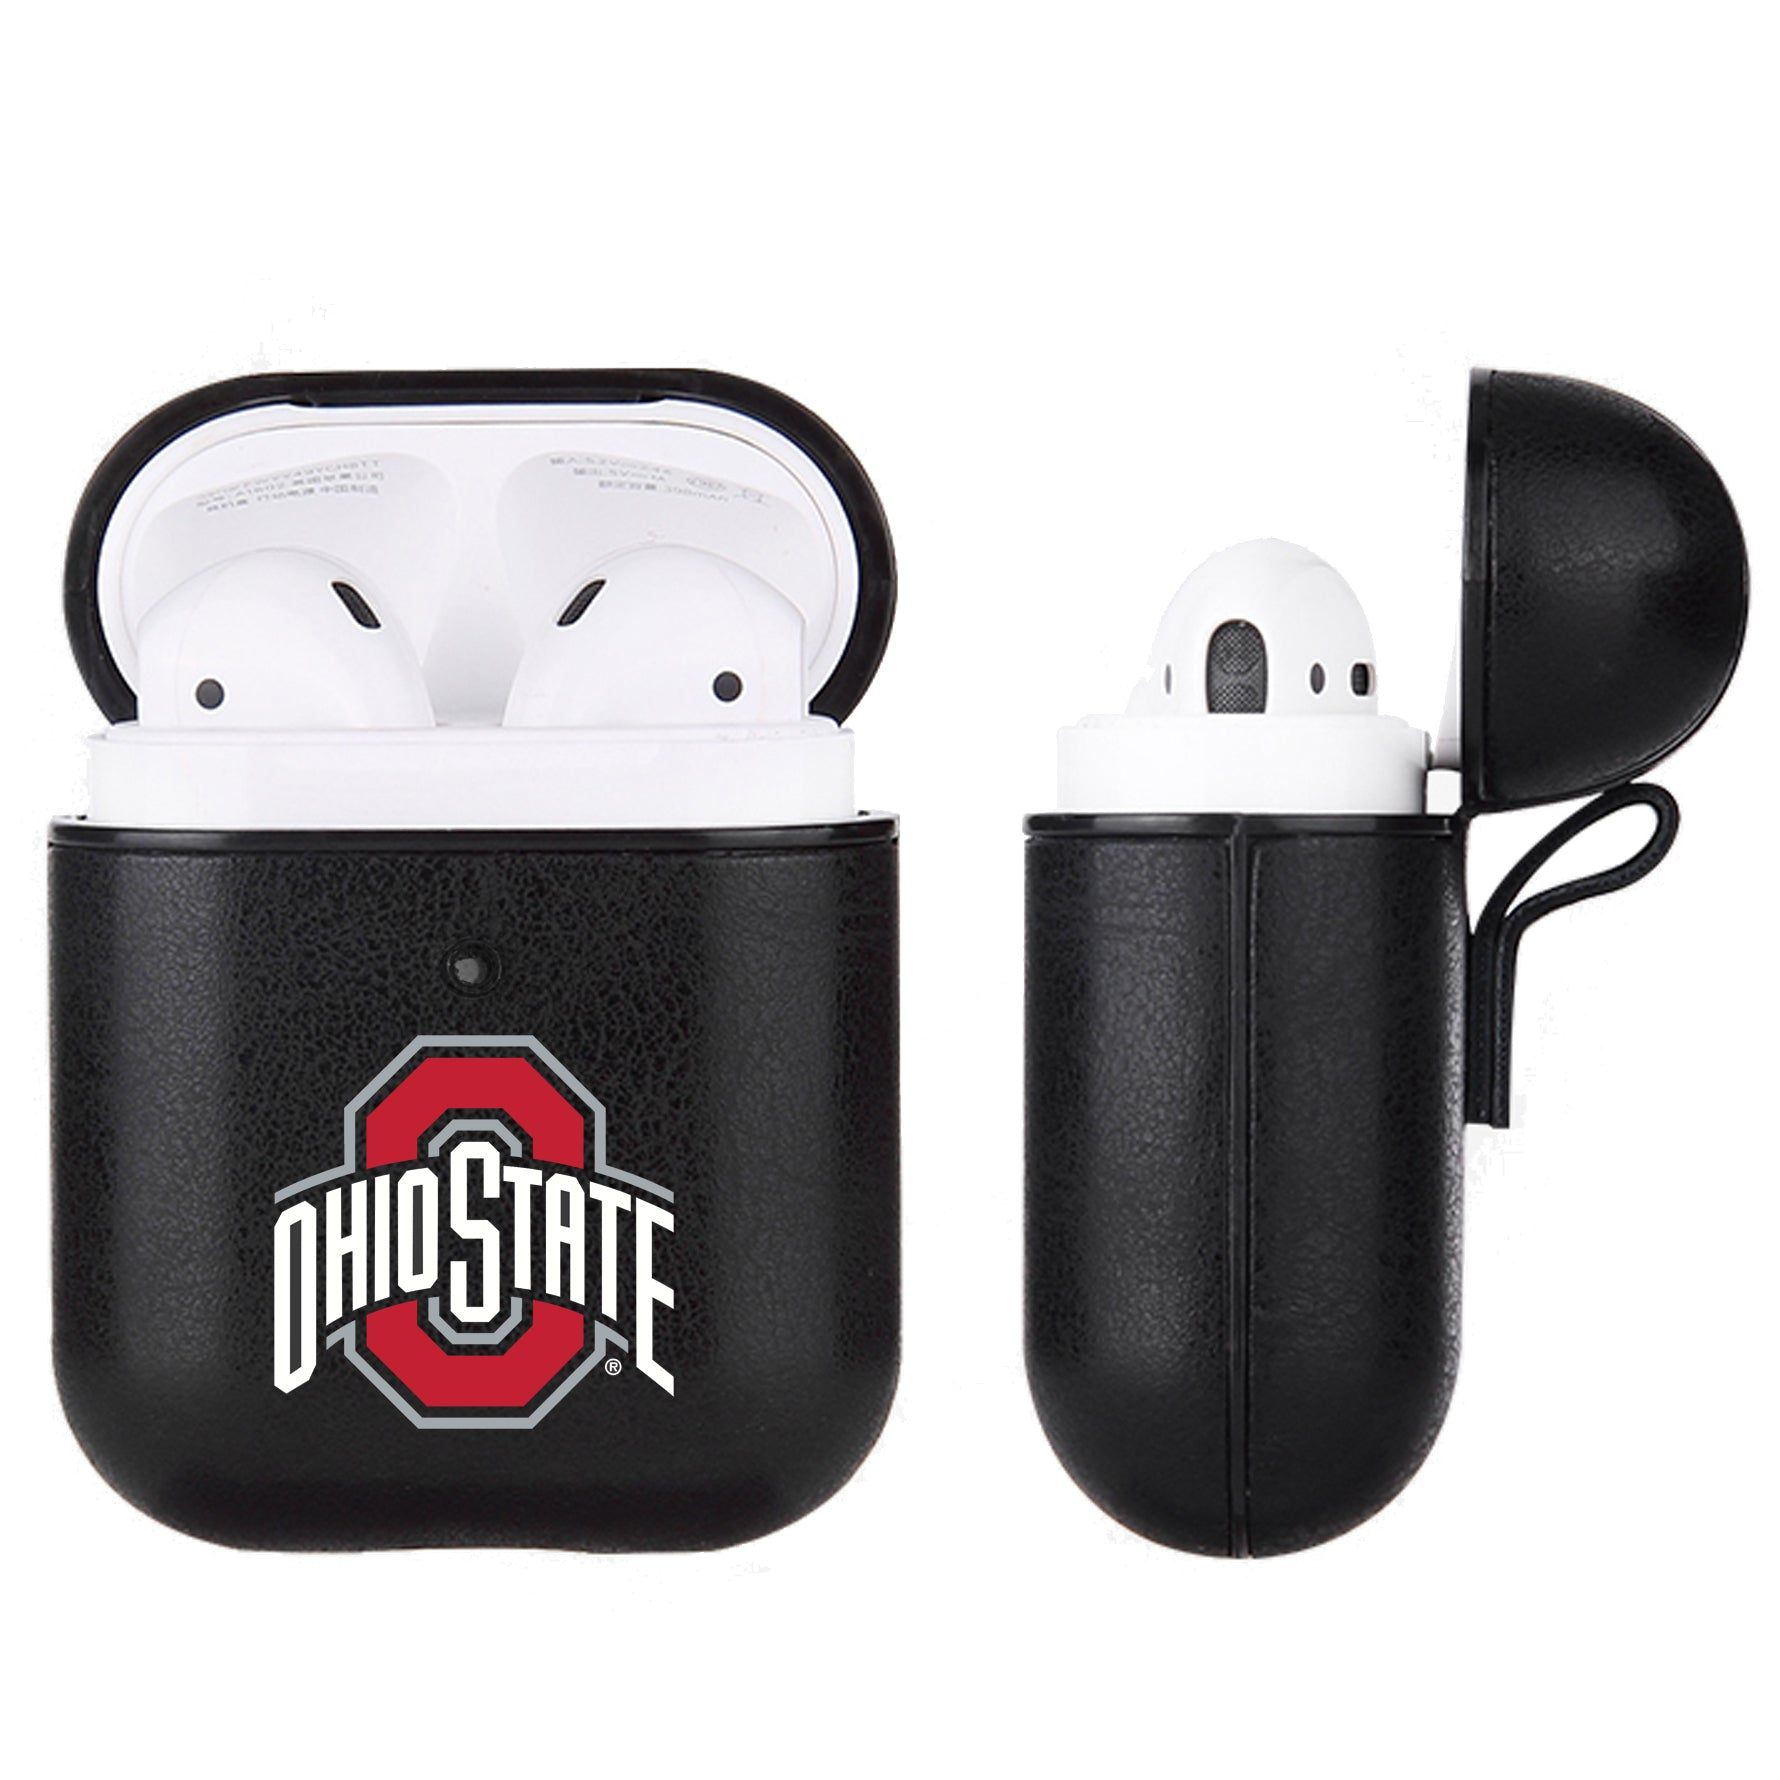 Ohio State Buckeyes Primary Mark design Black Apple Air Pod Leather Case